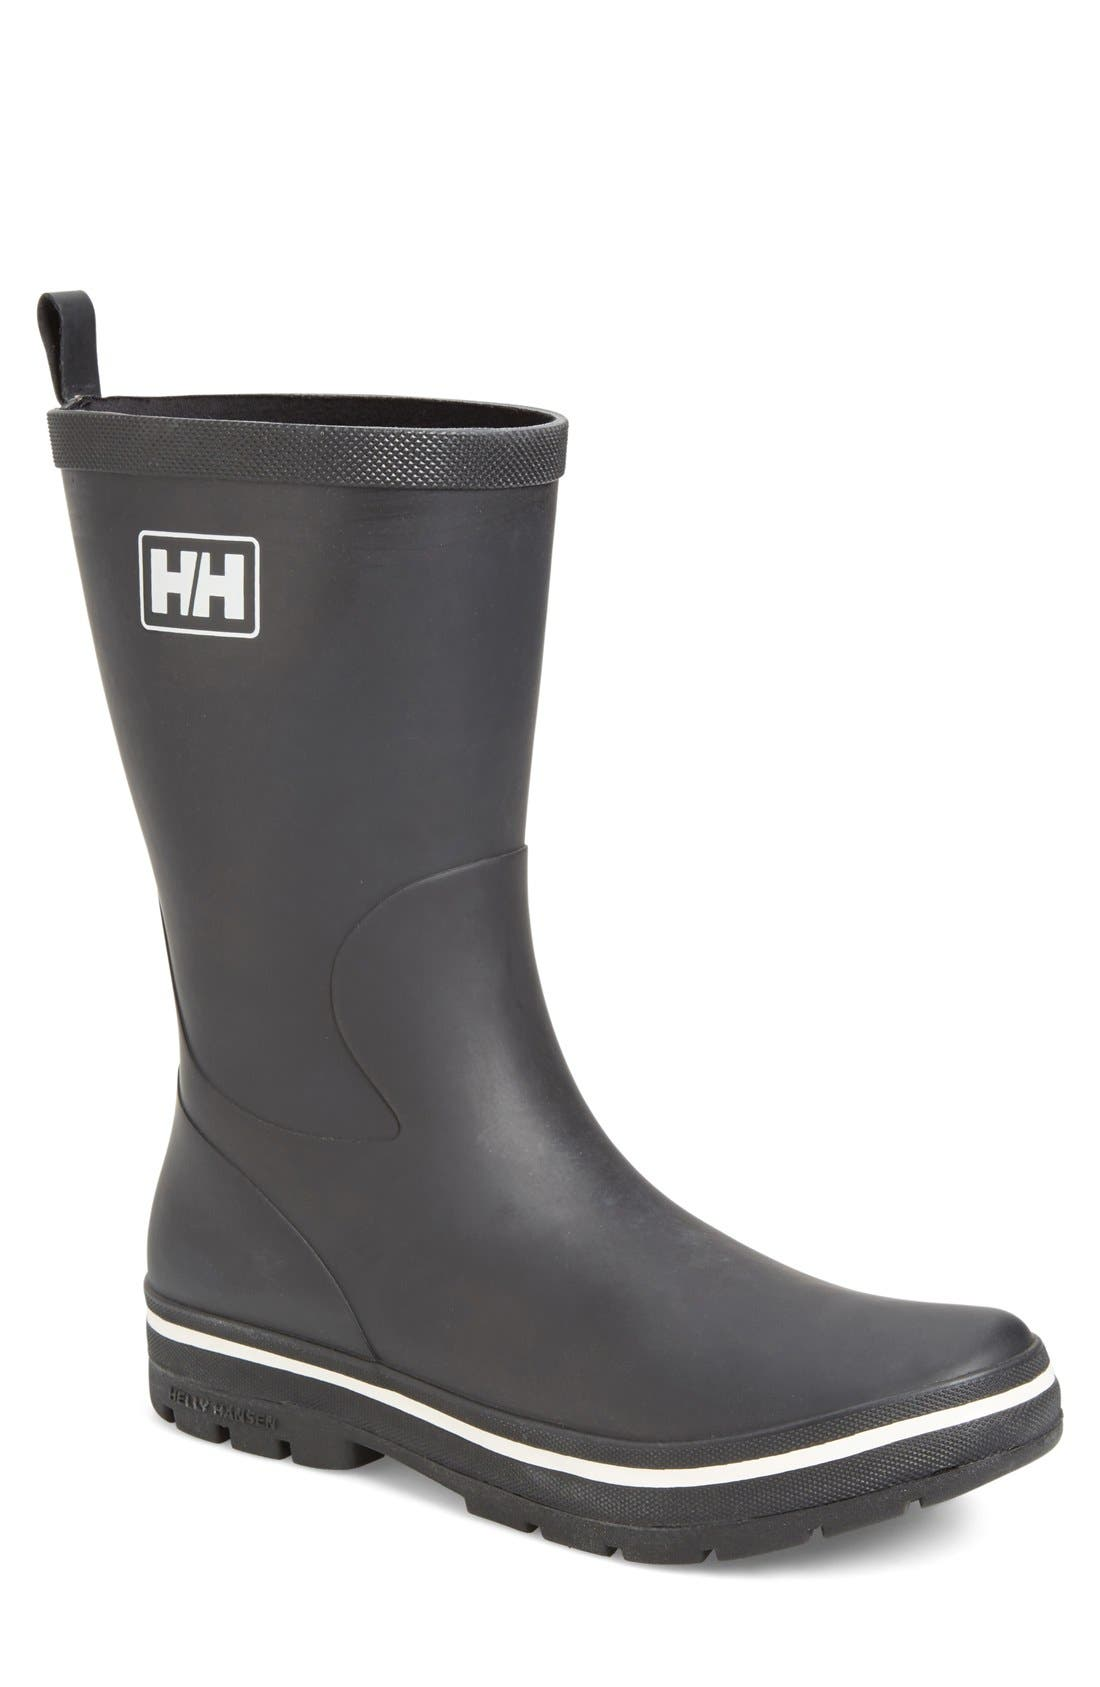 'Midsund 2' Rain Boot,                         Main,                         color, 002